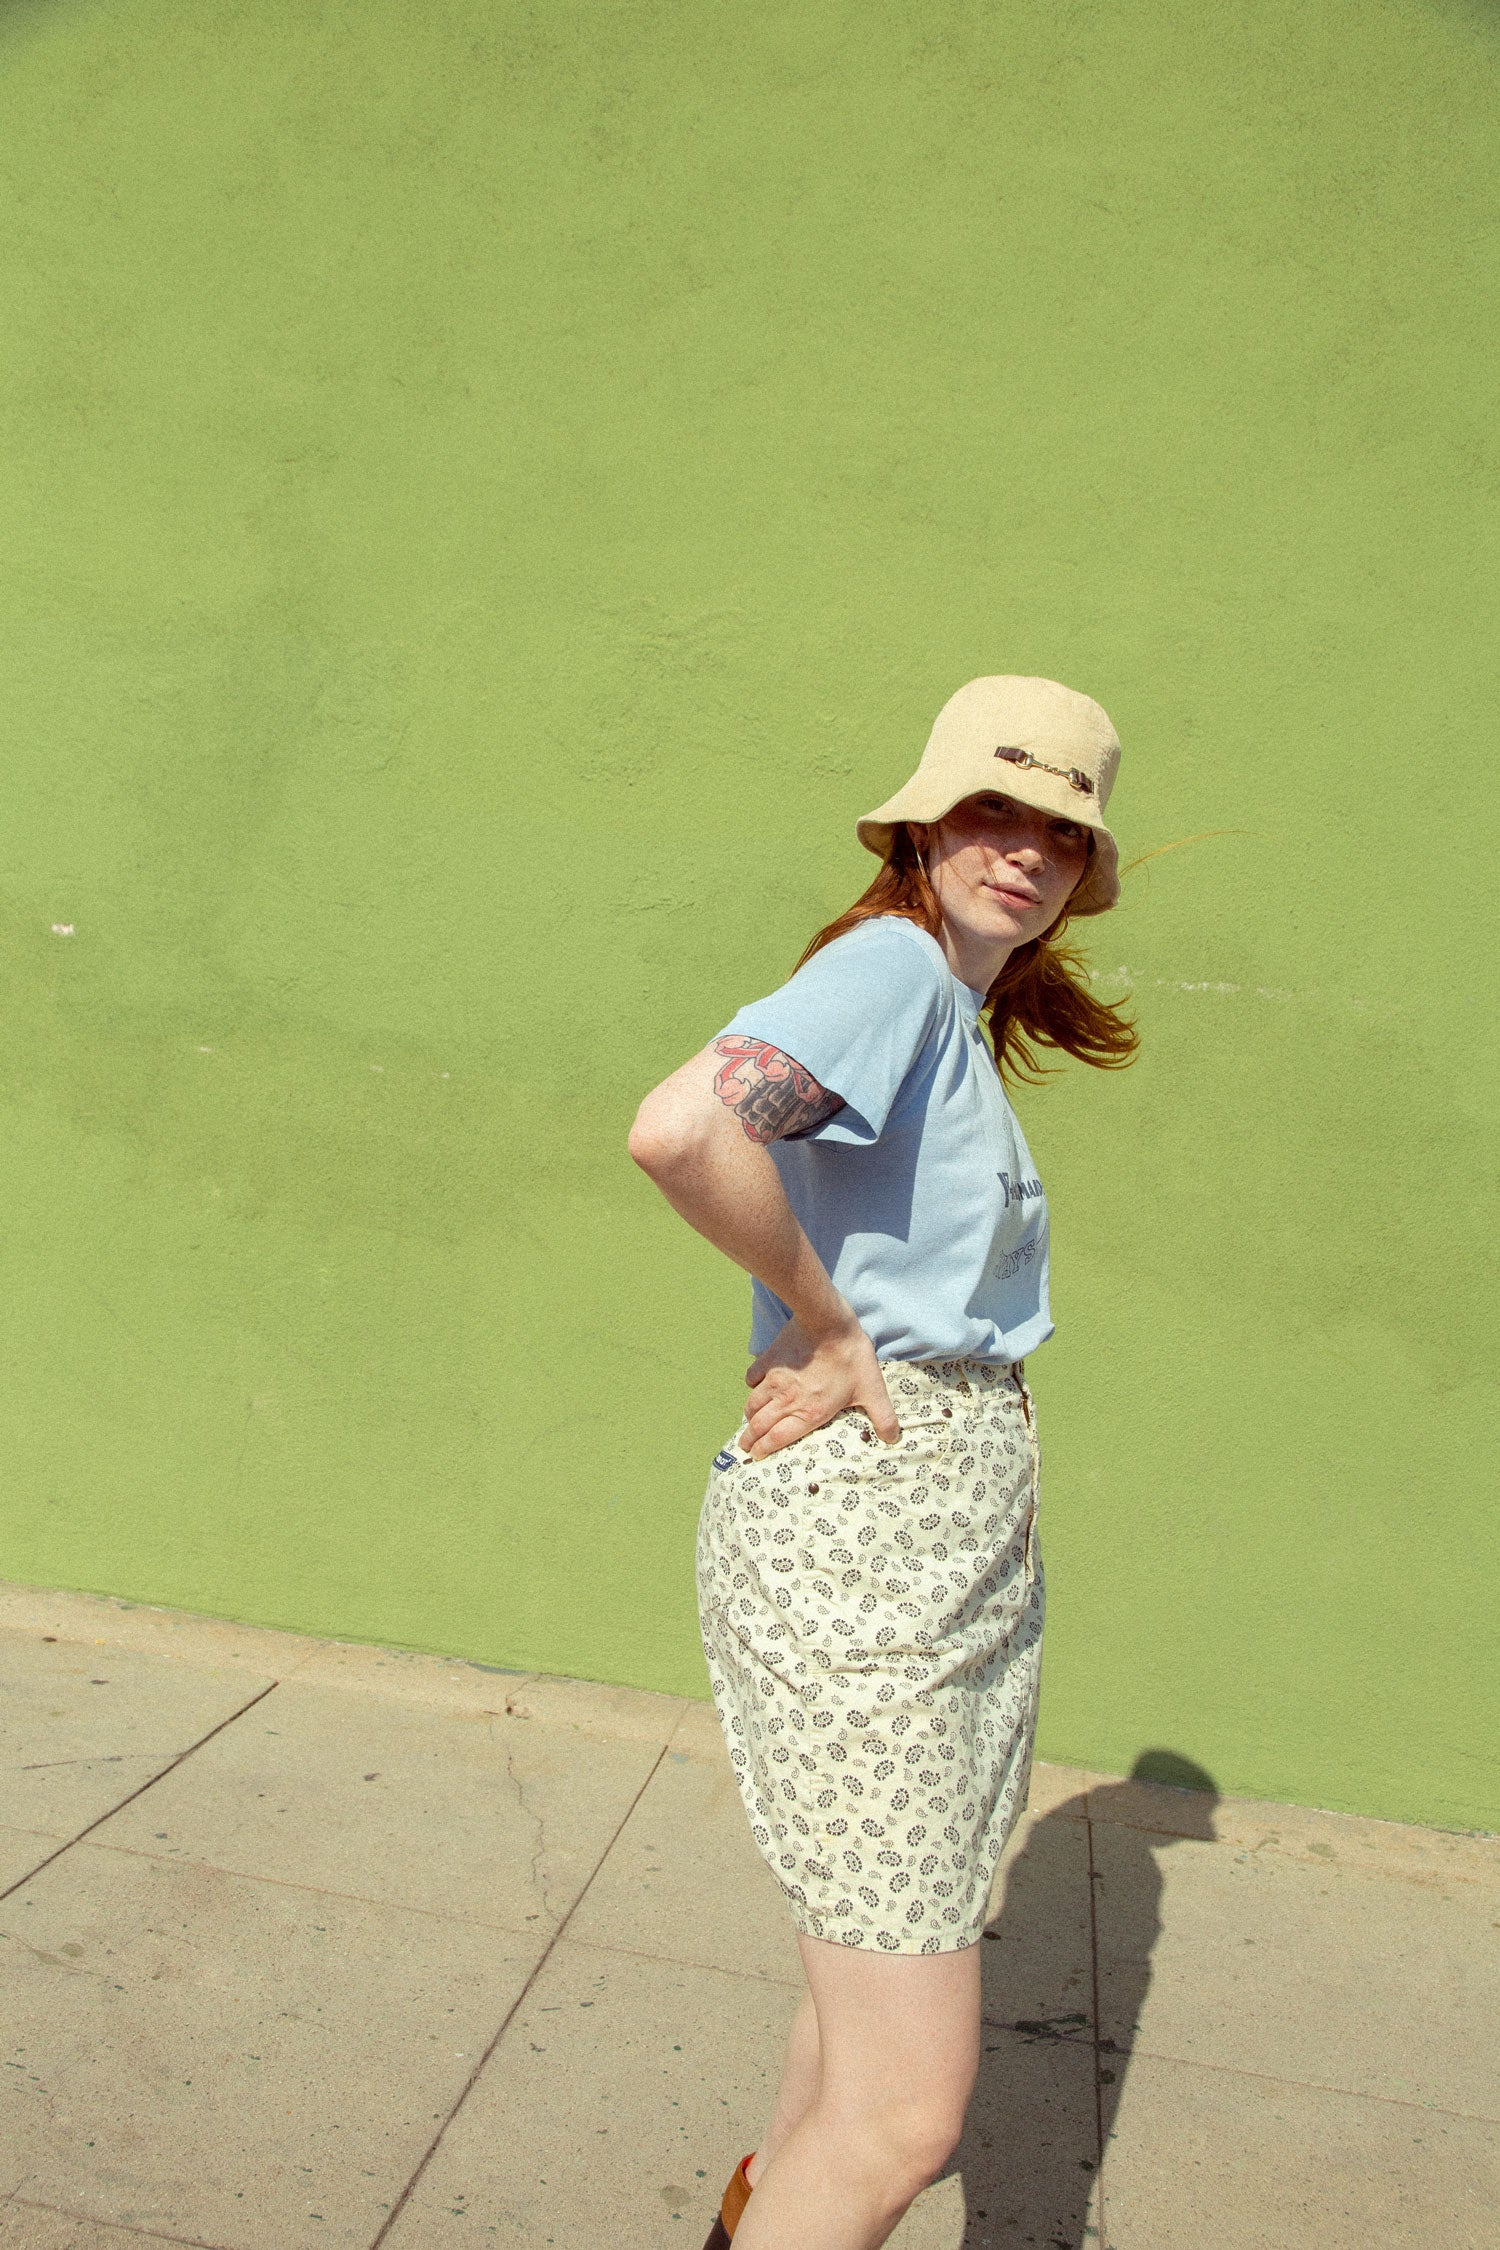 Model wearing 70s vintage YMCA shirt, and paisley skirt.  In front of green wall with wind blowing.